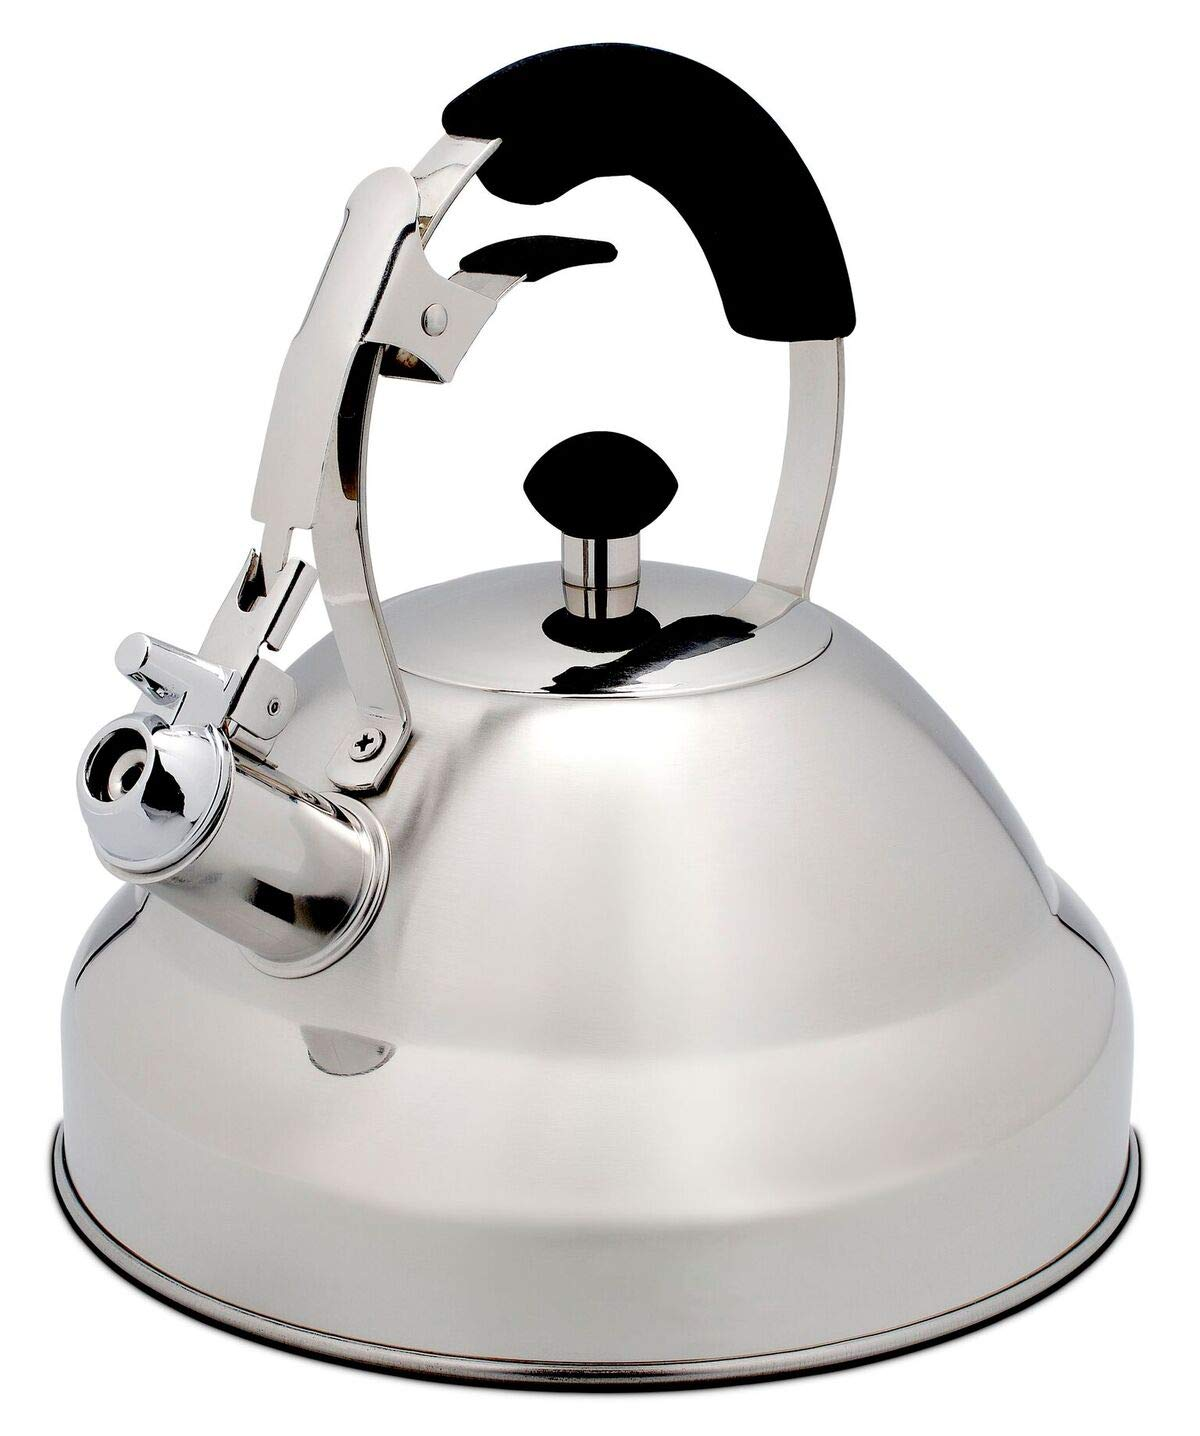 Extra Sturdy Surgical Stainless Steel Whistling Tea Kettle for Stovetop with Aluminum Layered Bottom 2.75 Quart Teapot by Bellemain by Bellemain